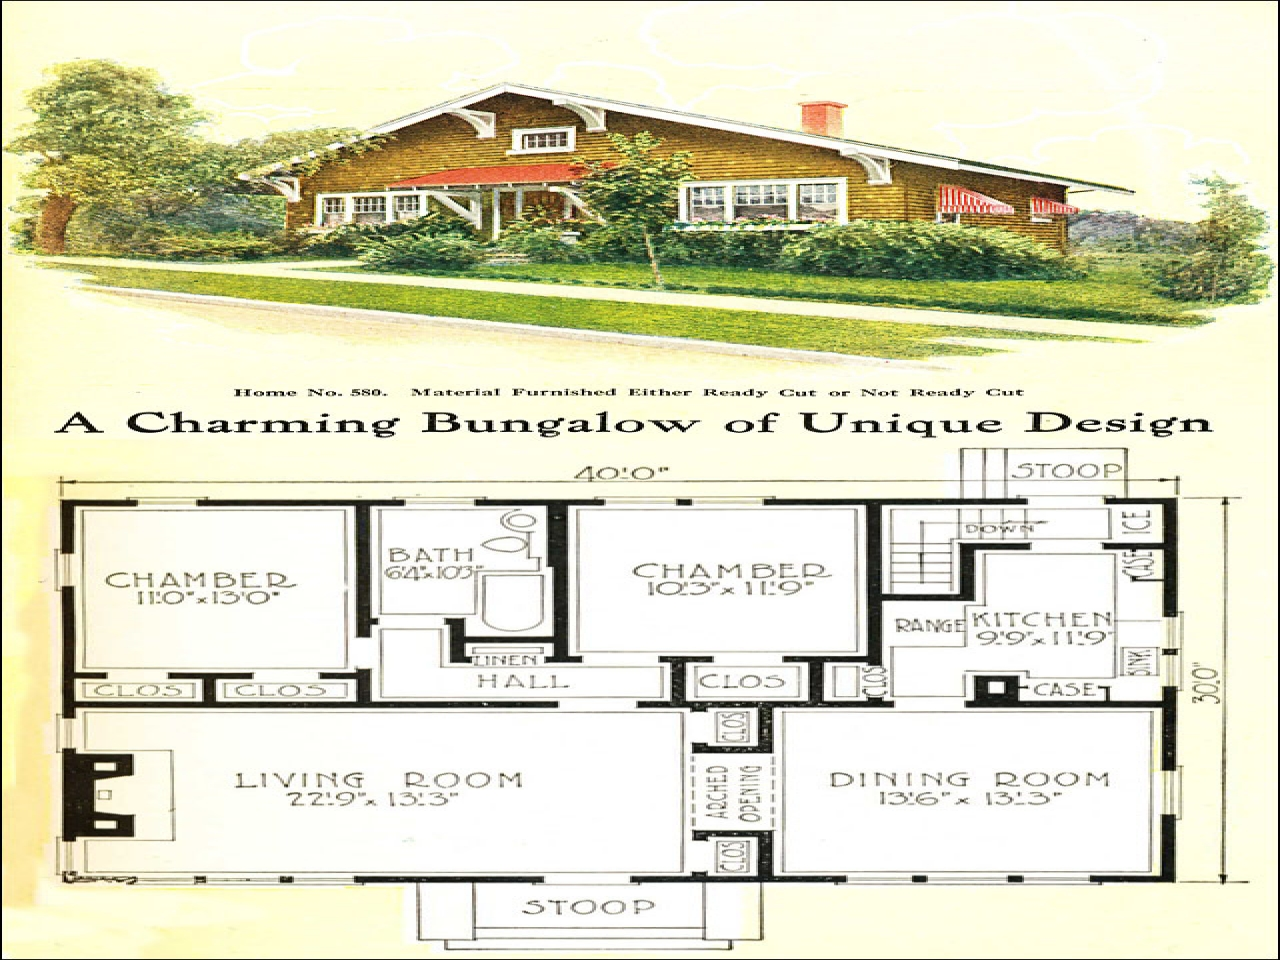 Small craftsman homes small craftsman bungalow house plans for Small craftsman bungalow plans